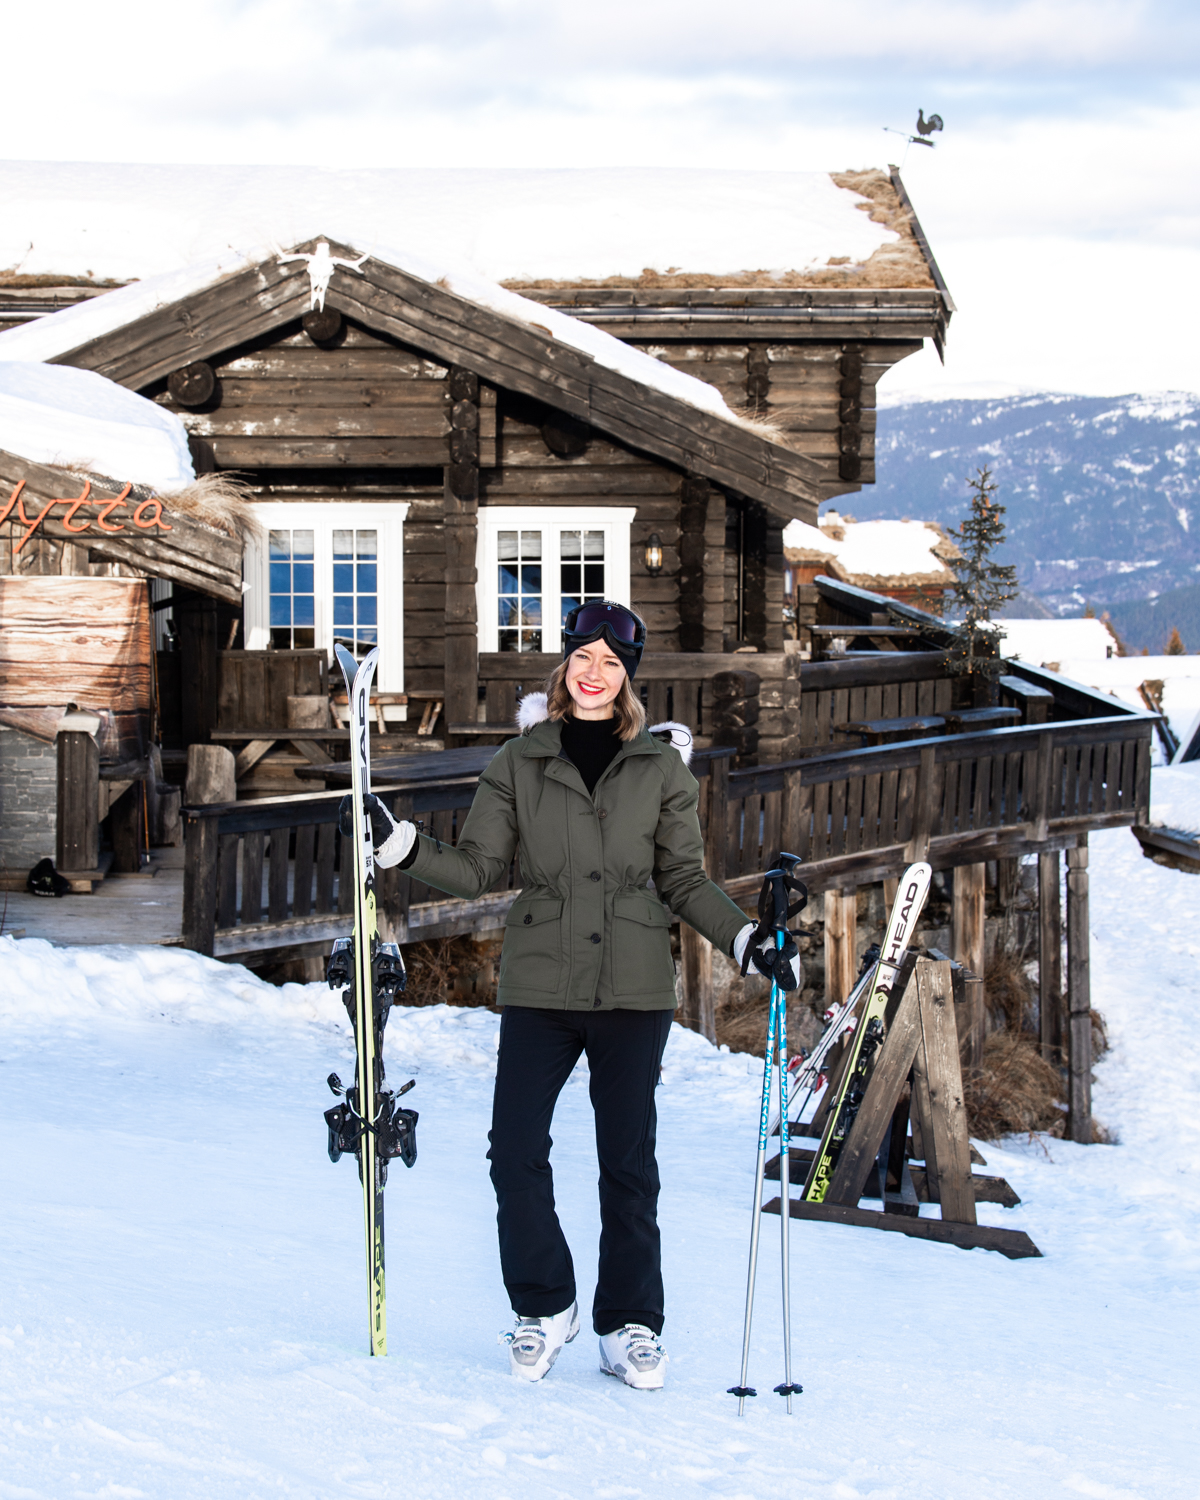 Stacie Flinner x Norway Ski Trip-35.jpg